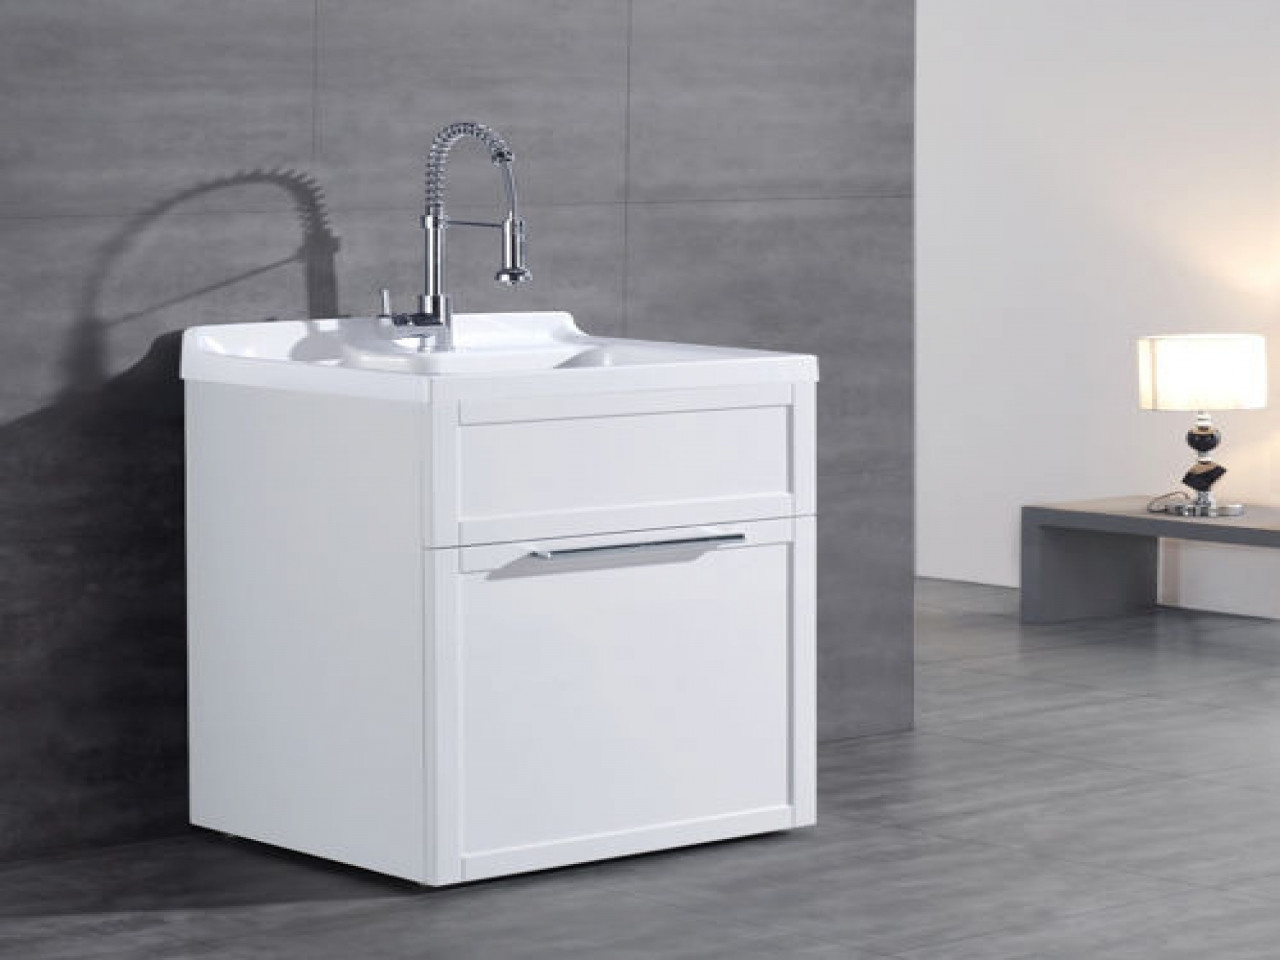 Best ideas about Laundry Room Utility Sink . Save or Pin Laundry room sink vanity laundry sink cabinet bo Now.